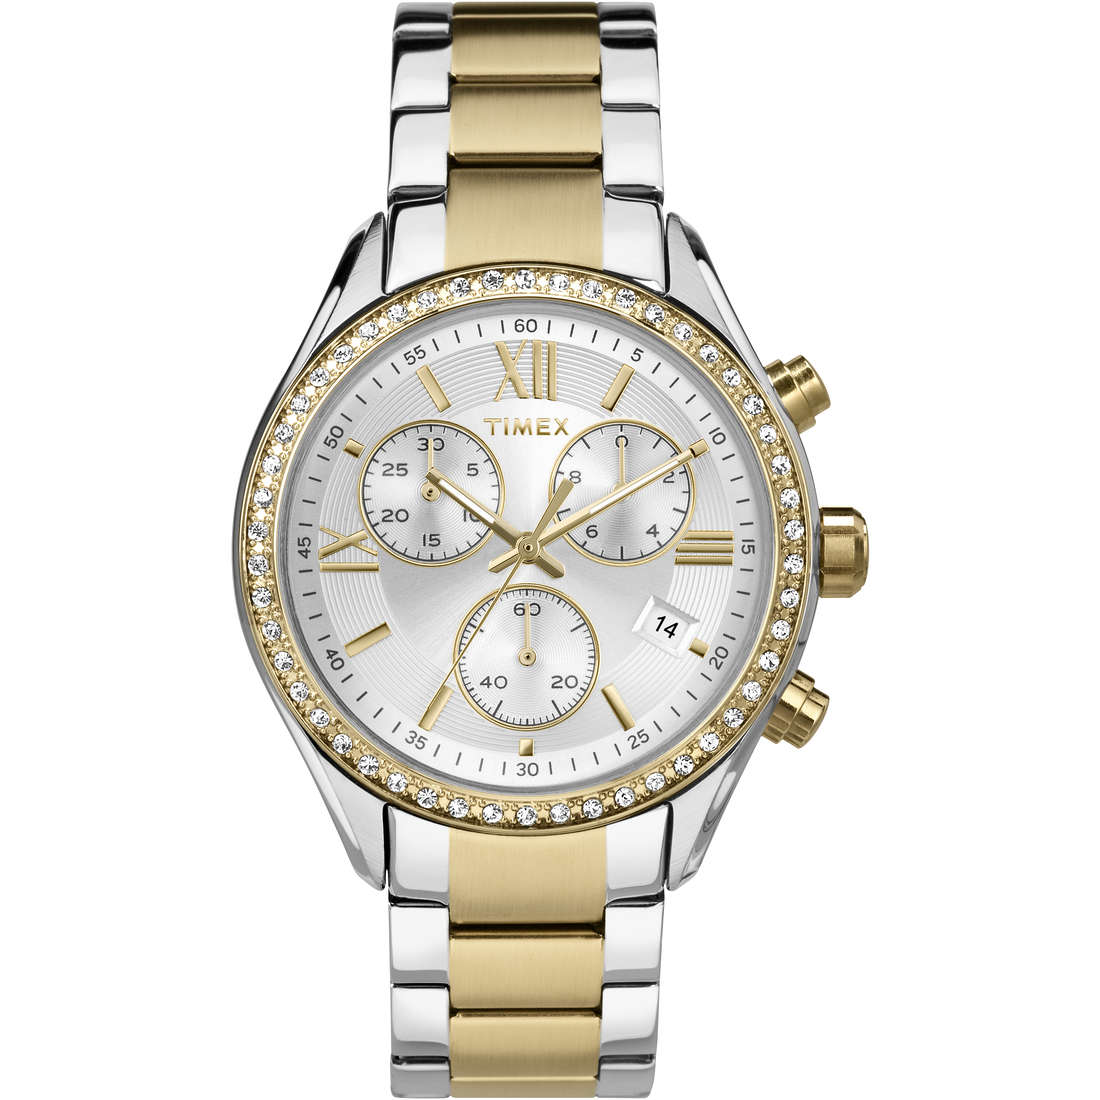 watch chronograph woman Timex Women's Collection TW2P67000